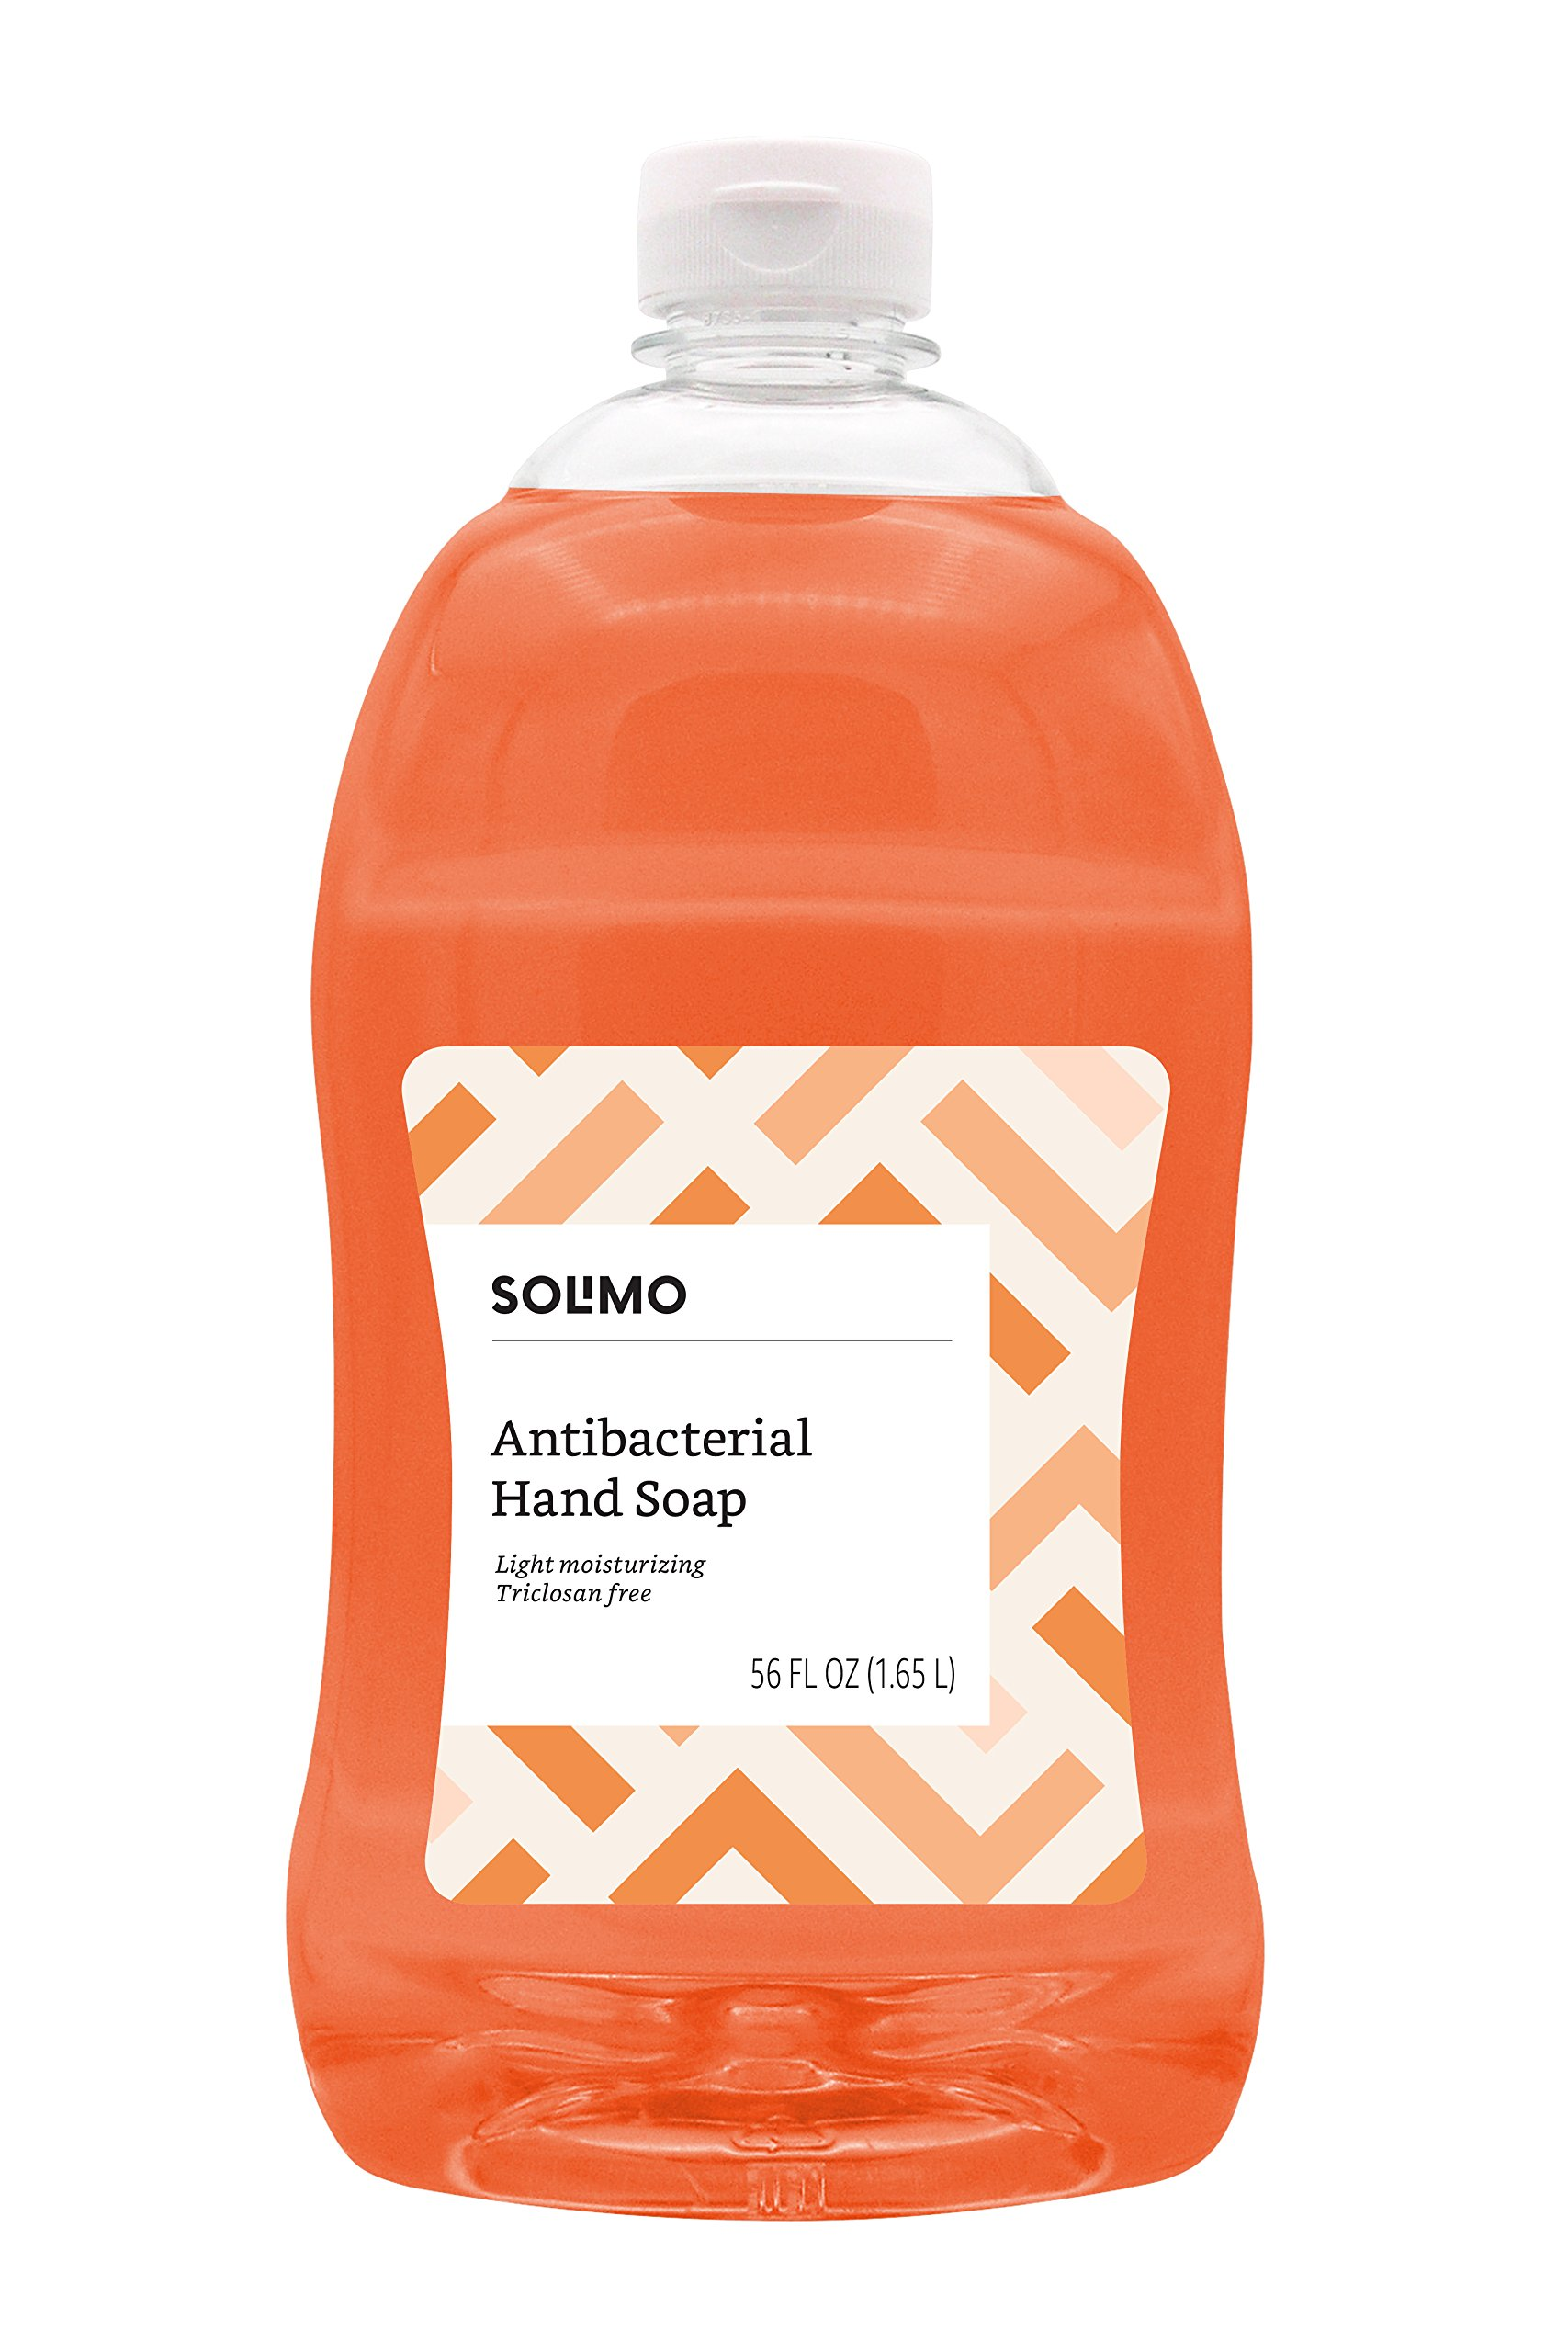 Amazon Brand - Solimo Antibacterial Liquid Hand Soap Refill, Light Moisturizing, Triclosan Free, 56 Fluid Ounces